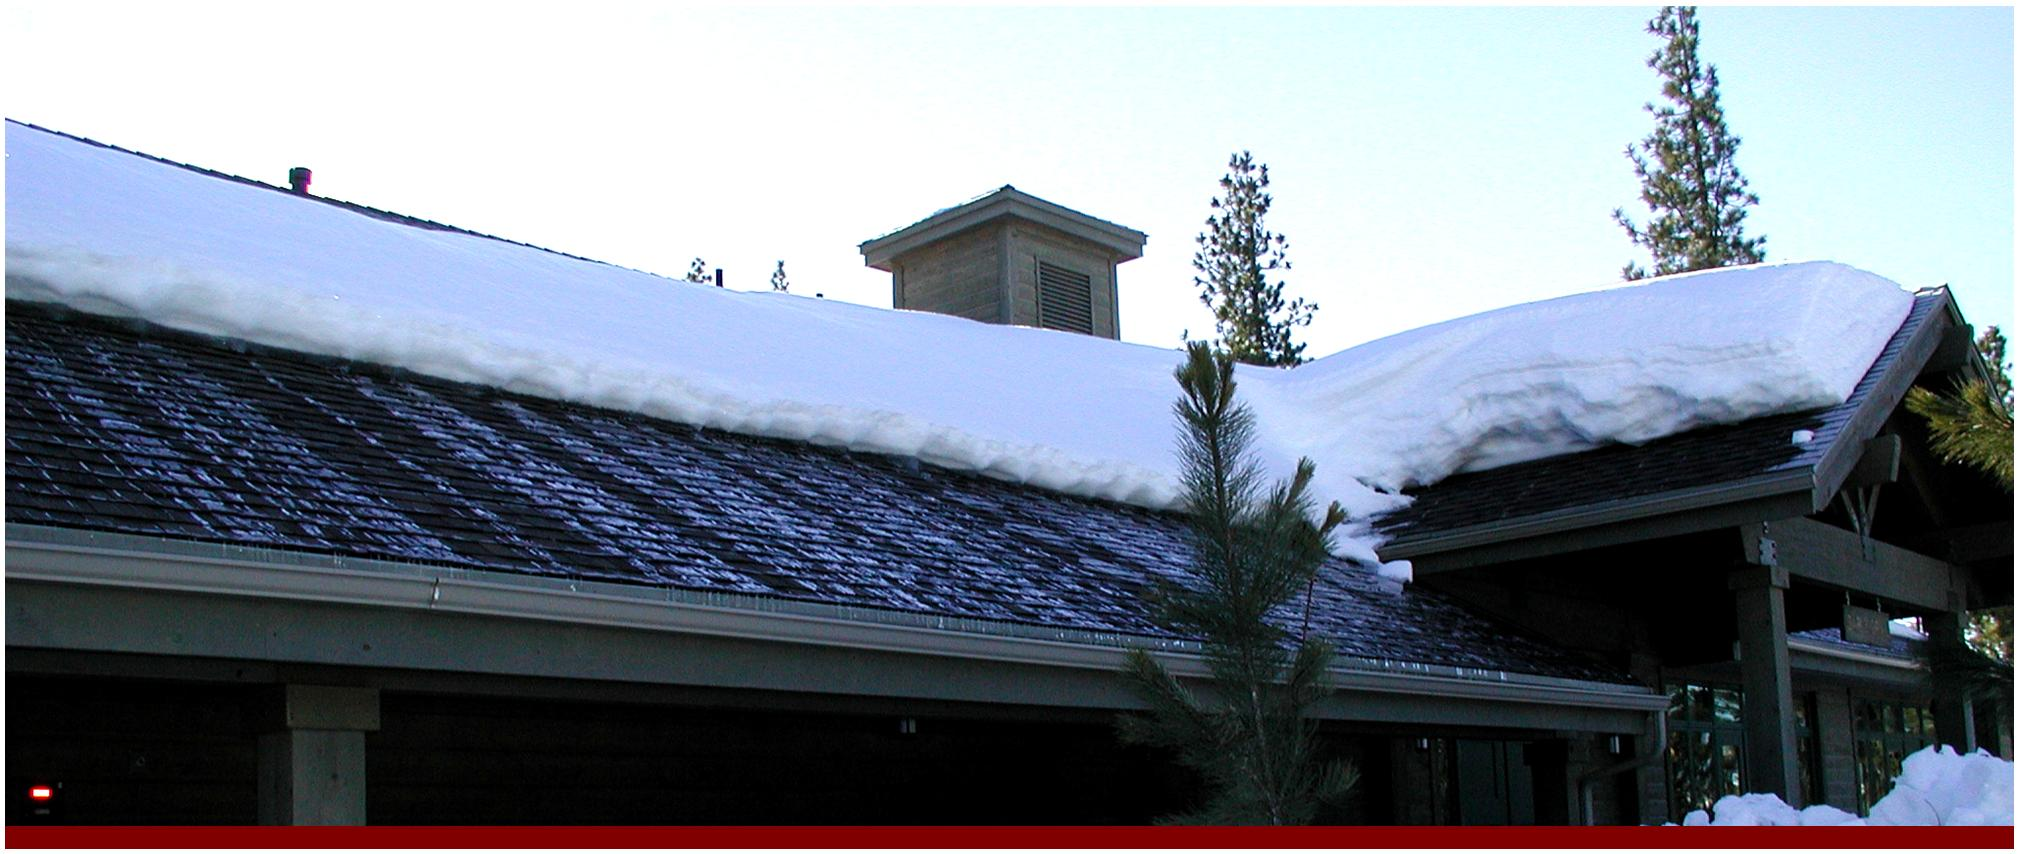 Electric ice melt for roofs - best roof 2017.